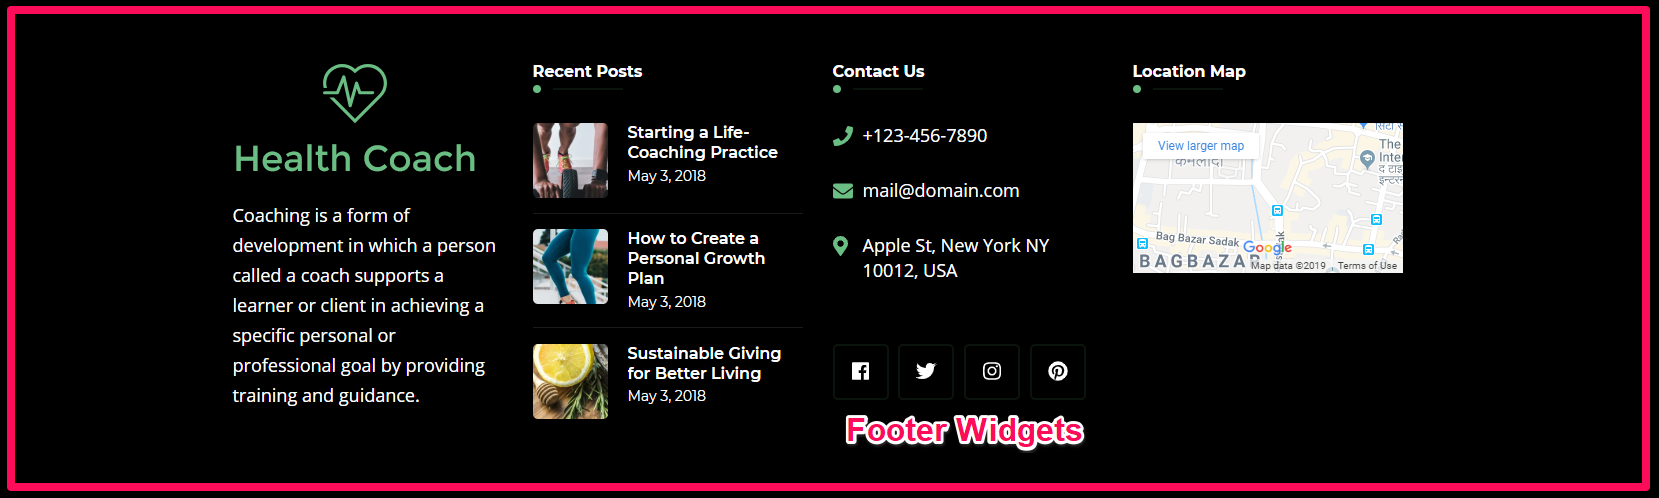 Footer Widgets demo blossom health coach